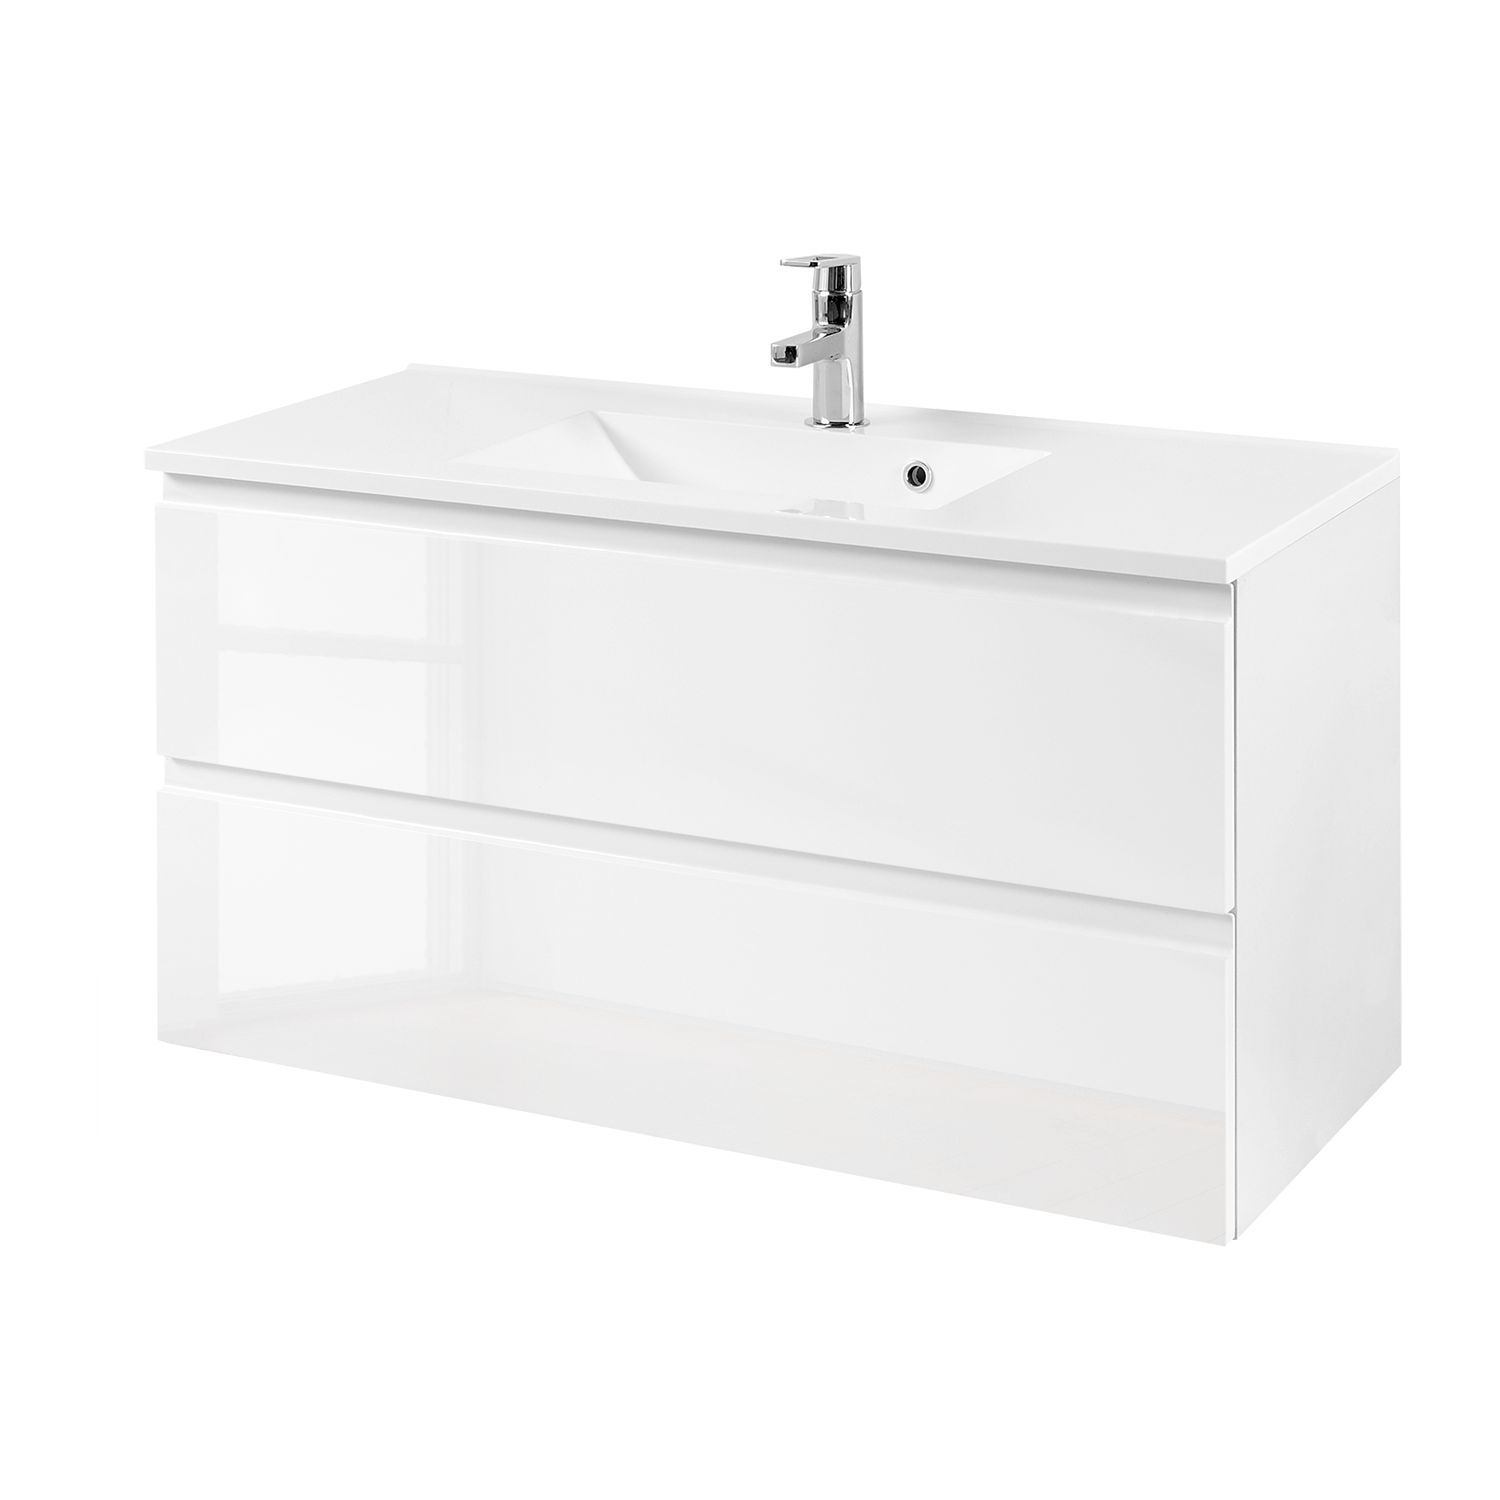 Pelipal Waschtischkonsole Pin By Ladendirekt On Badmöbel Dream Bathrooms Bathroom Home Decor